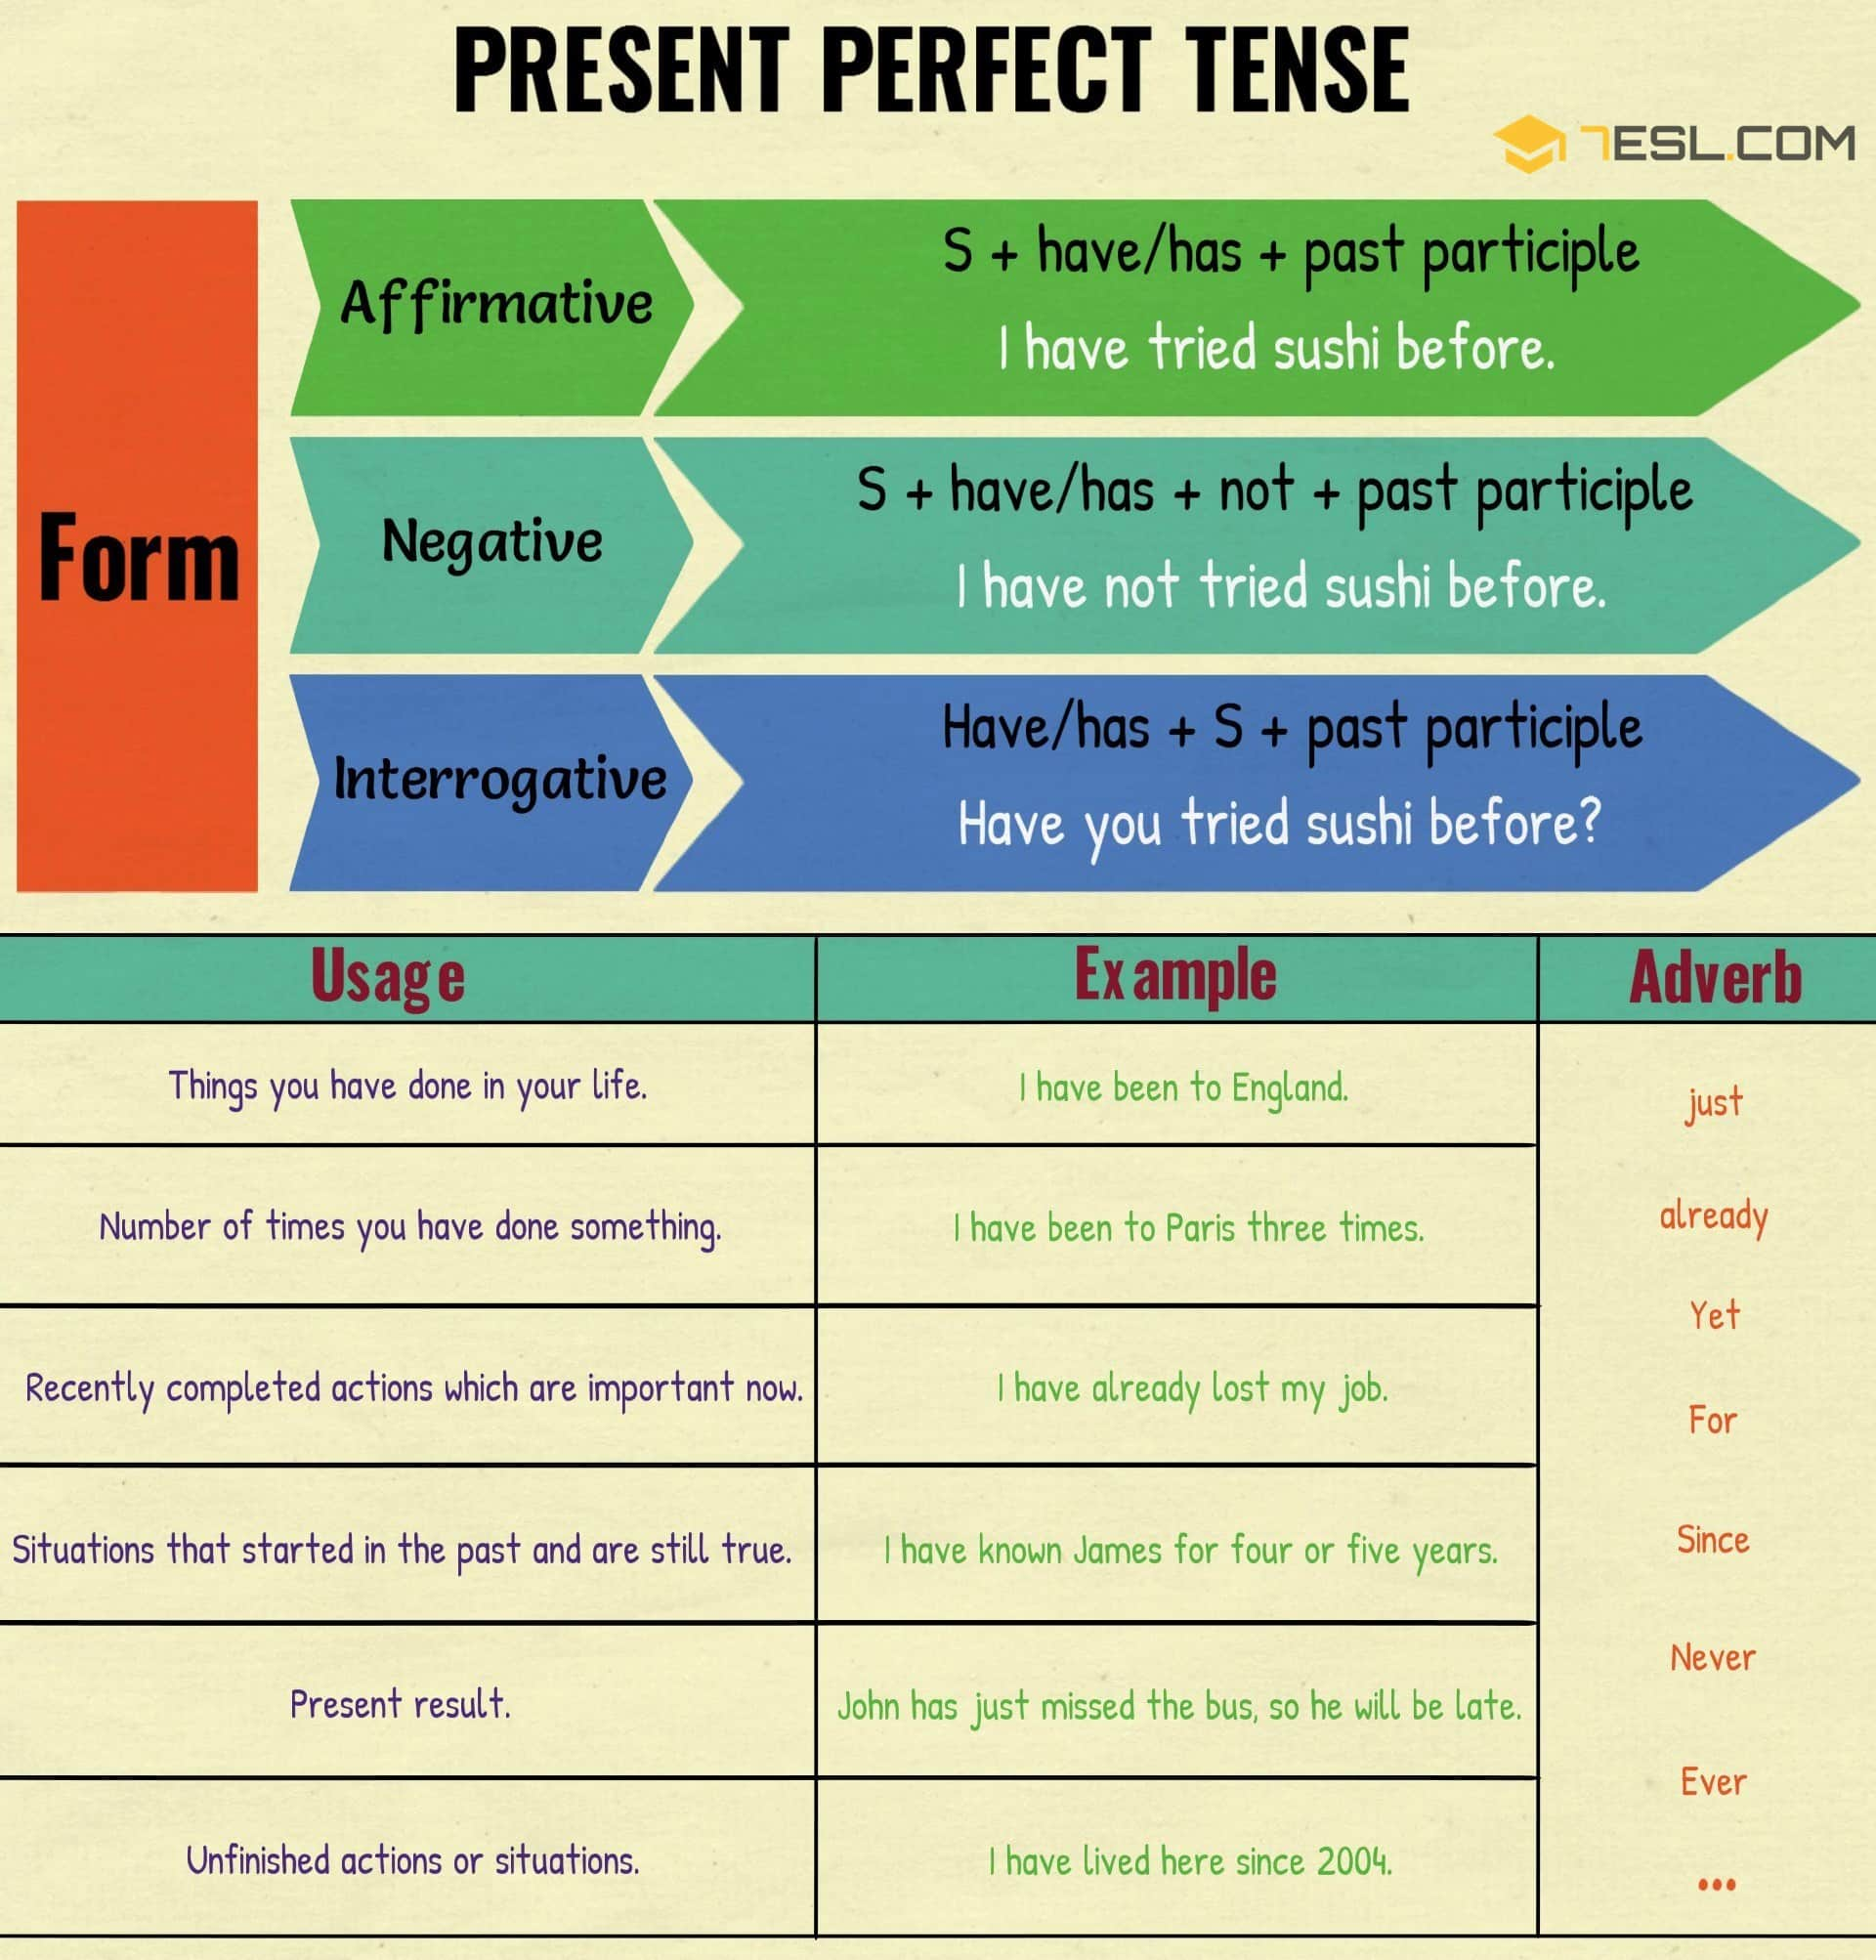 Present Perfect Tense Grammar Rules And Examples